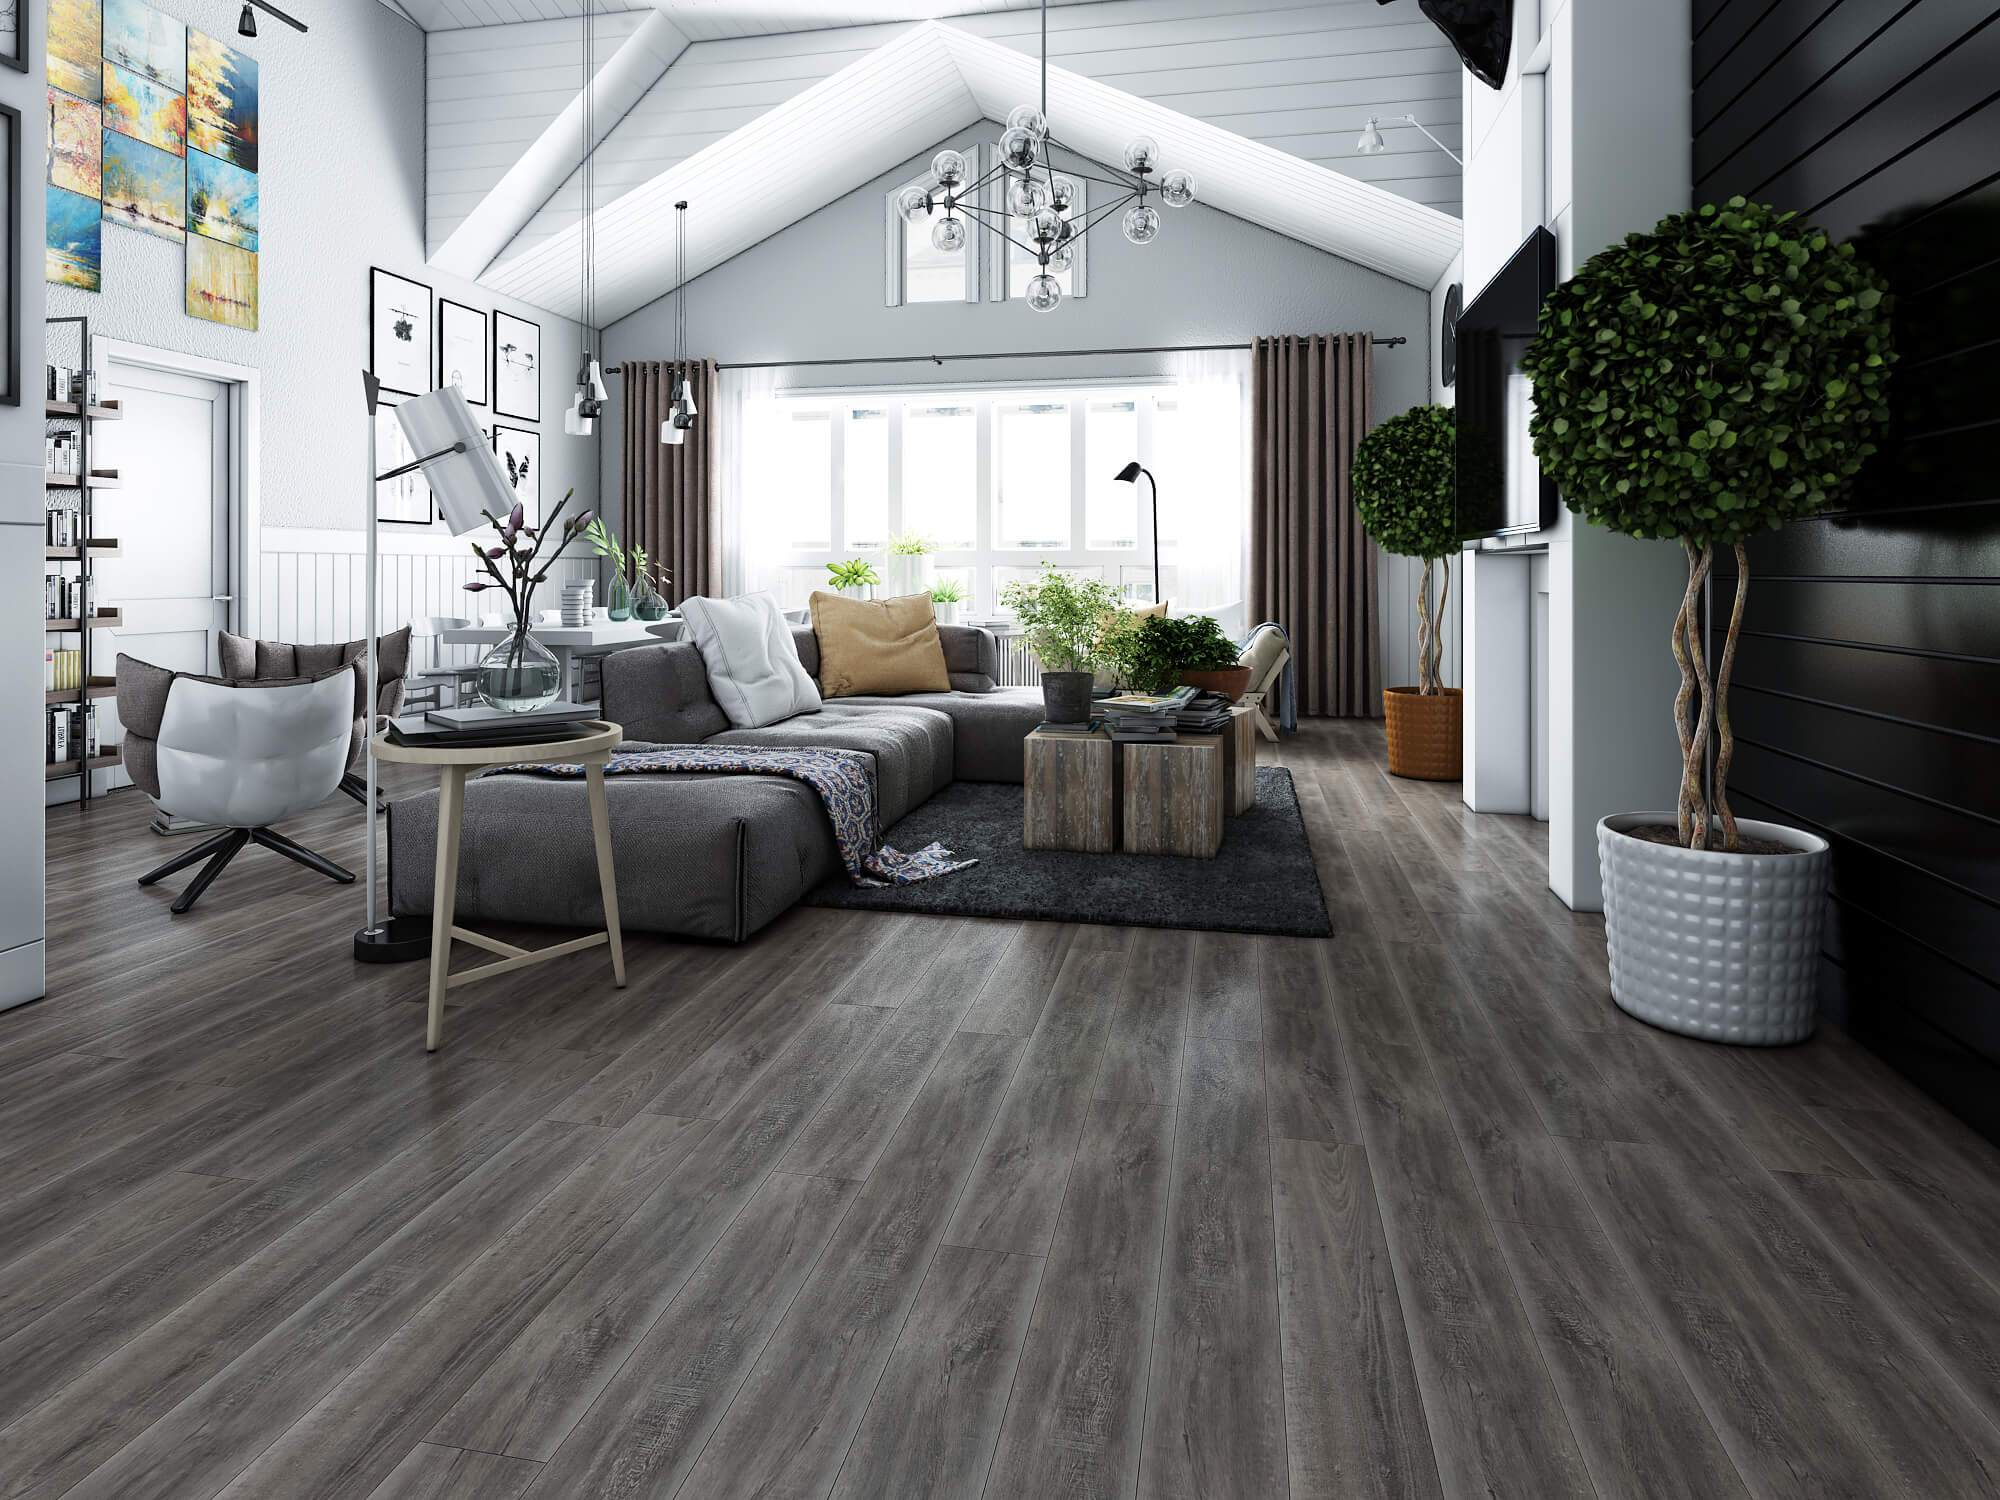 Flooring Trends to Help Interior Designers In 2021